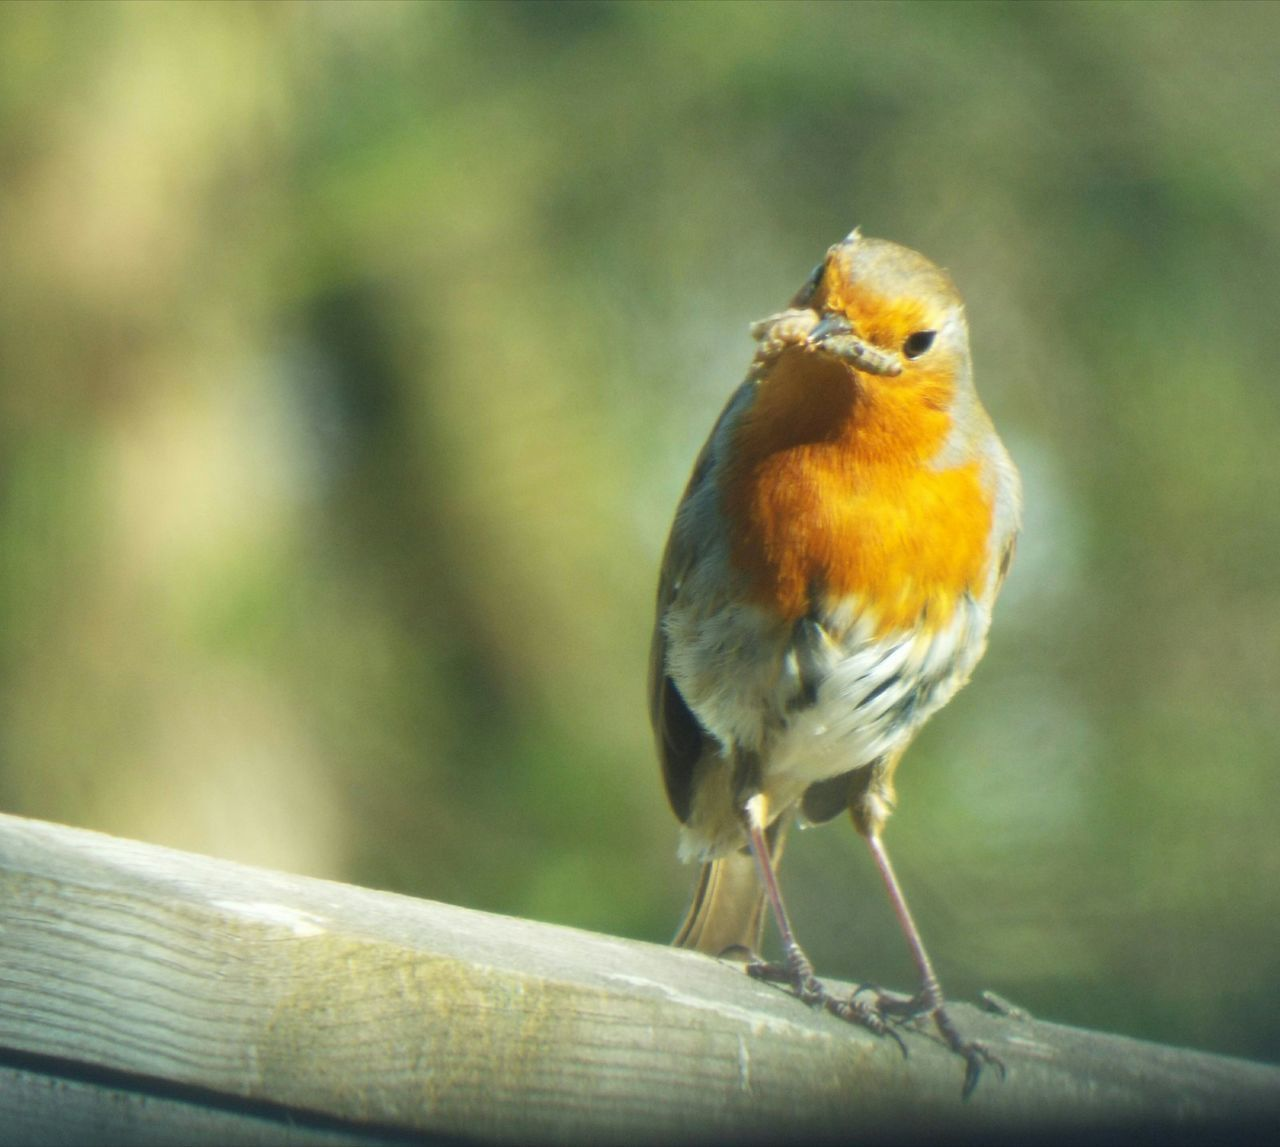 Feeding  Perching One Animal Bird Robin Animals In The Wild Animal Themes Songbird  Nature Close-up Day No People Robin Redbreast